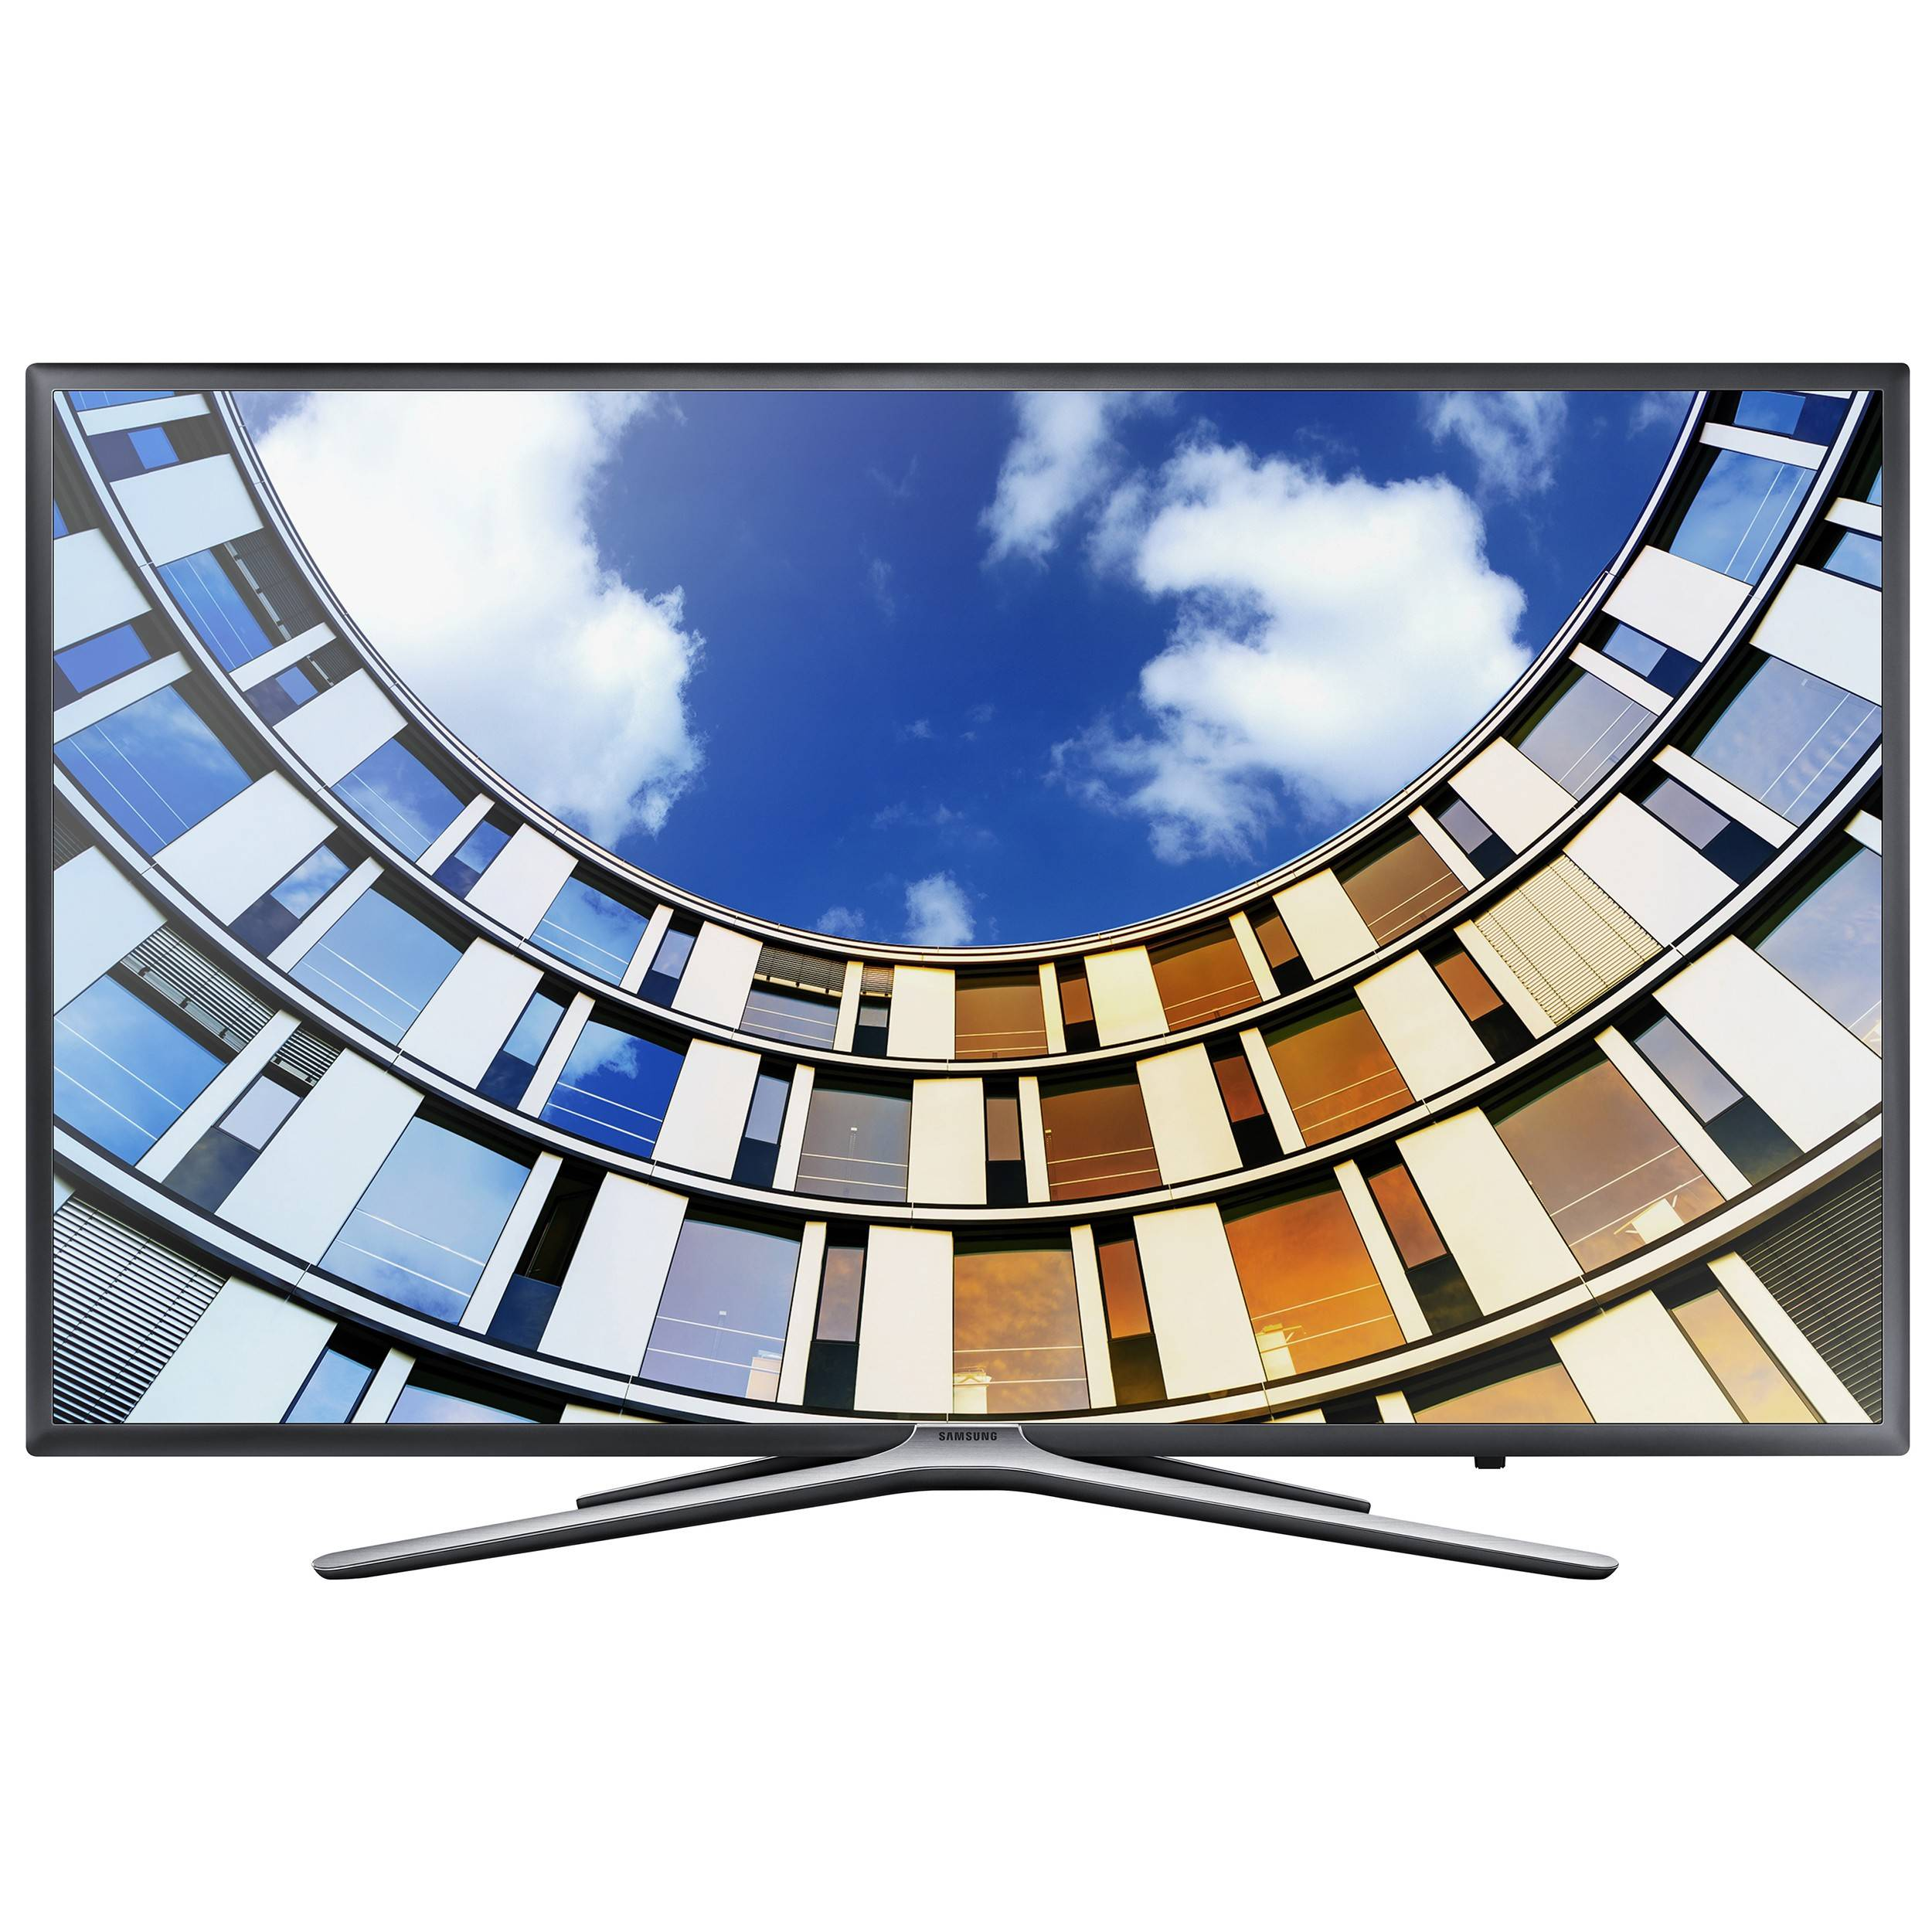 "Samsung 55"" Full HD Smart TV UE55M5505 (tumma titaani)"